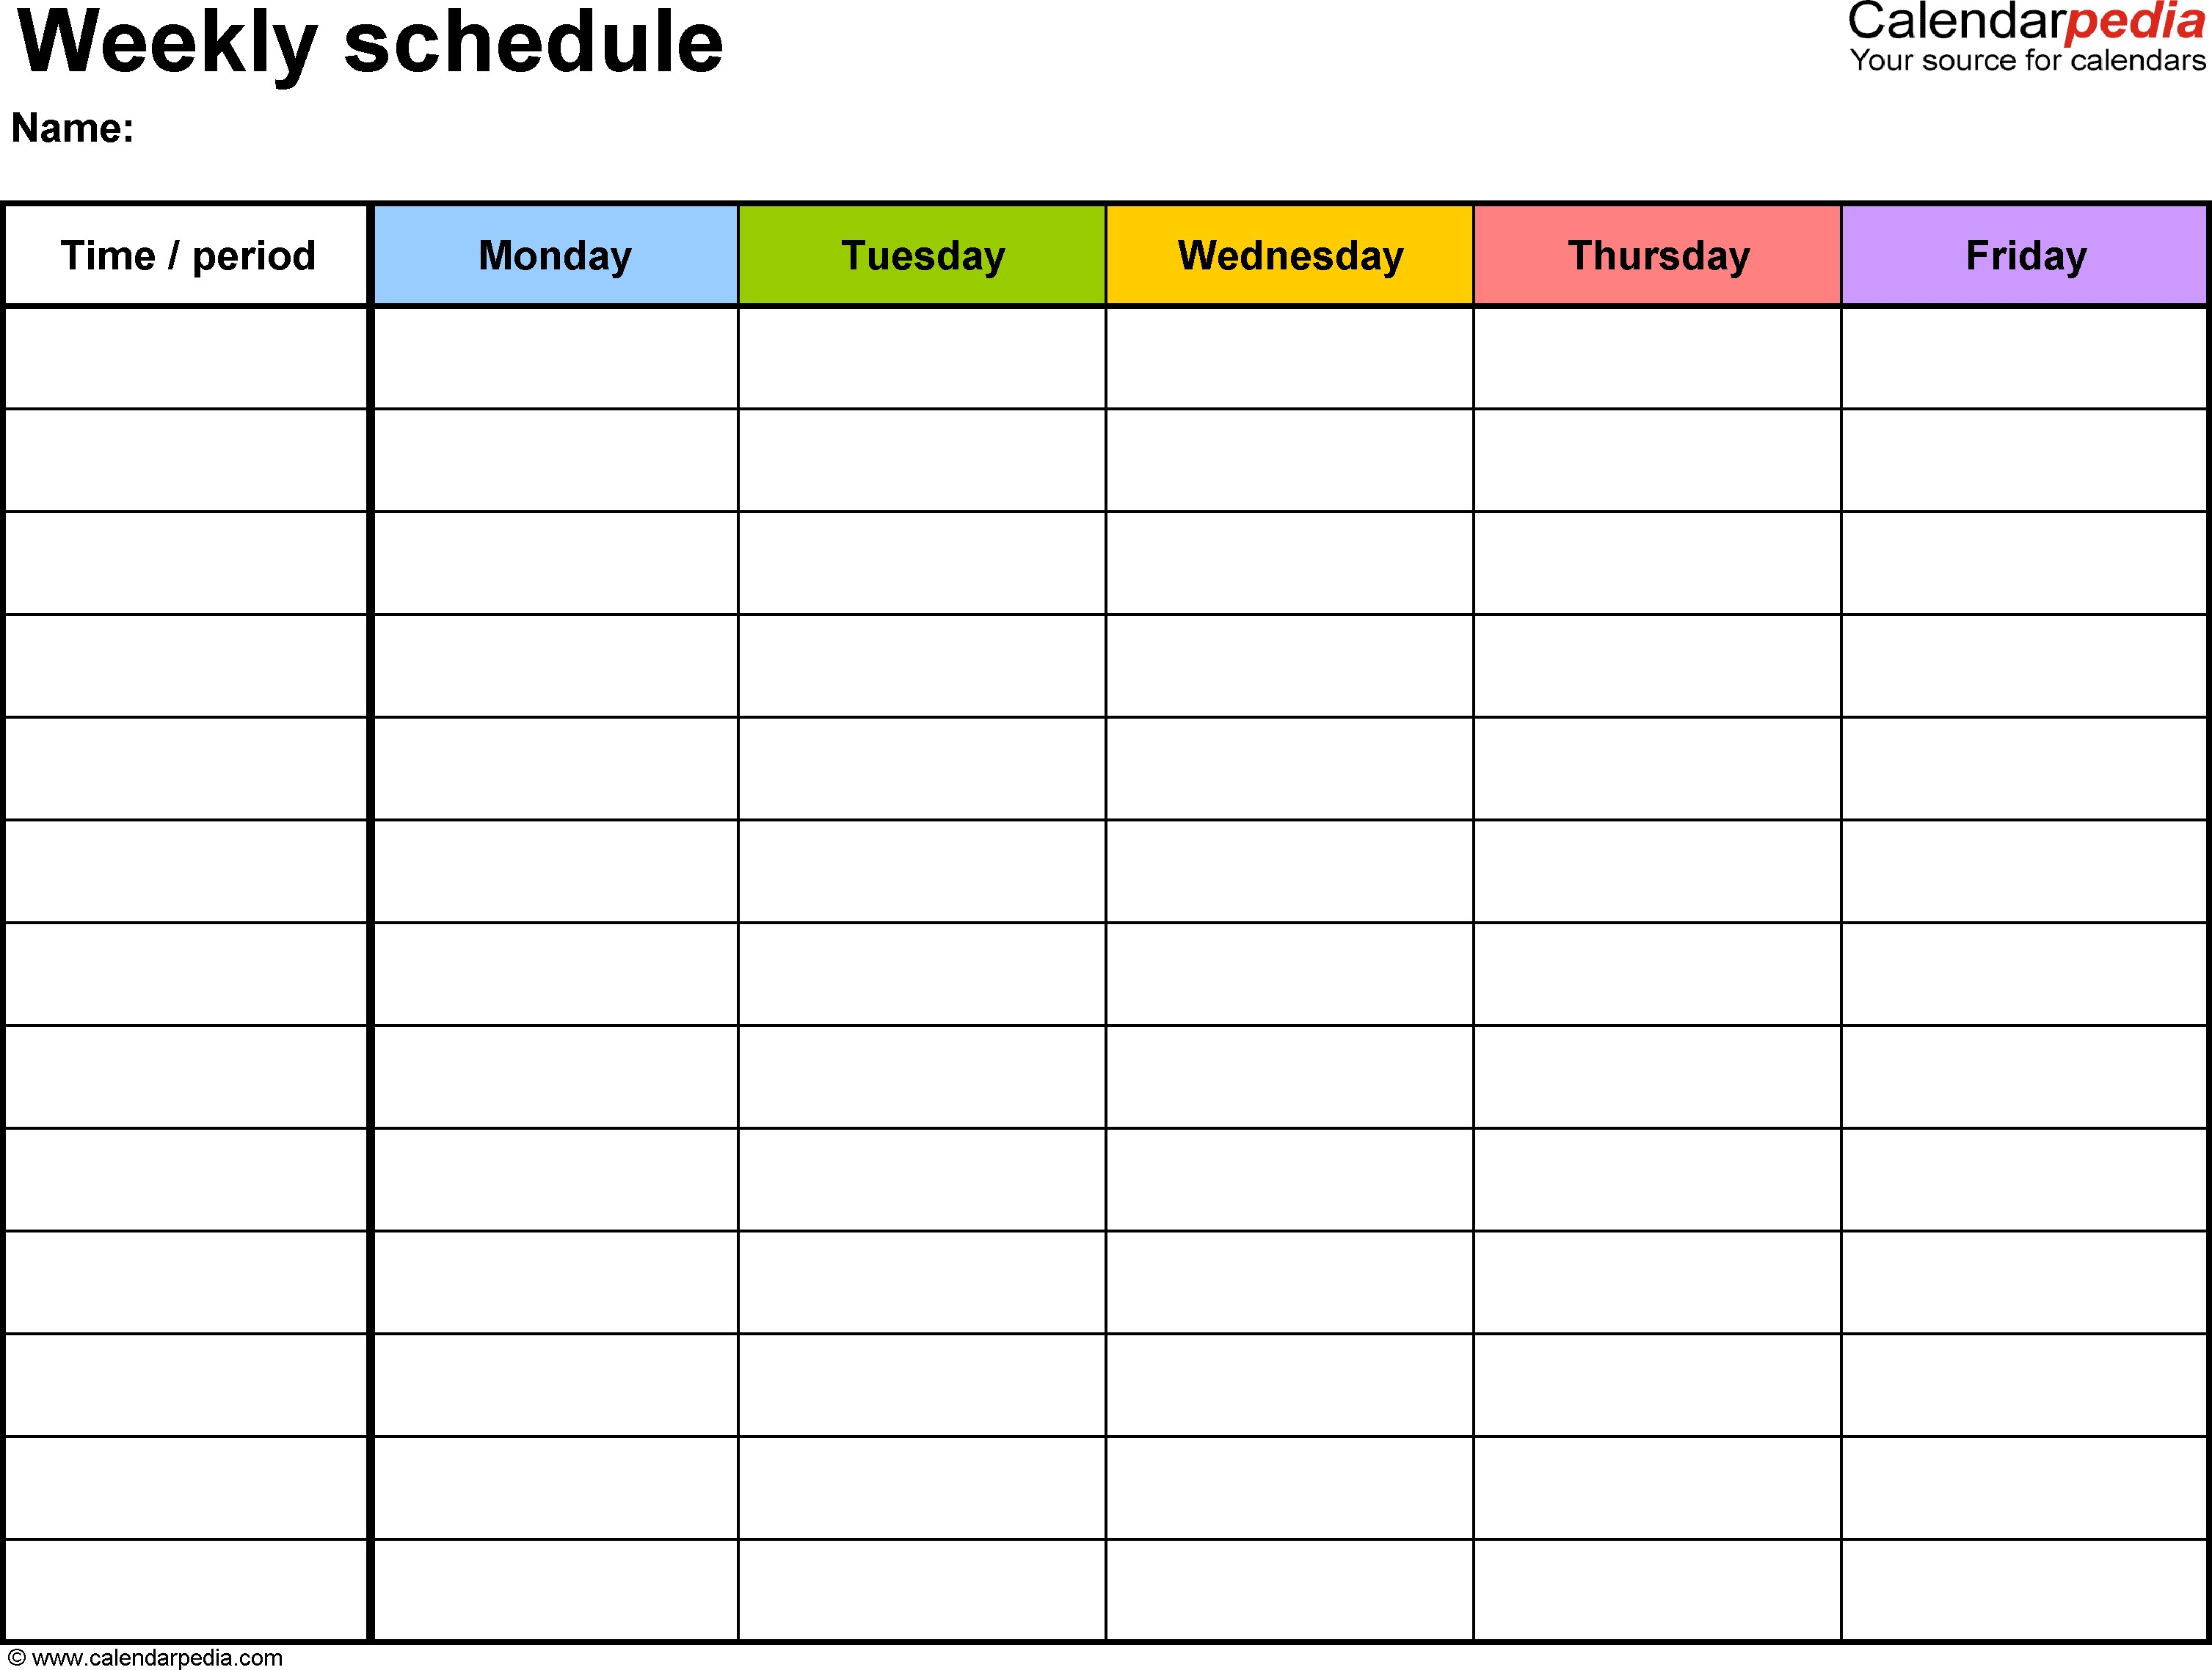 Weekly Calendar With Time Slots – Printable Month Calendar pertaining to Calendar With Time Slots Printable